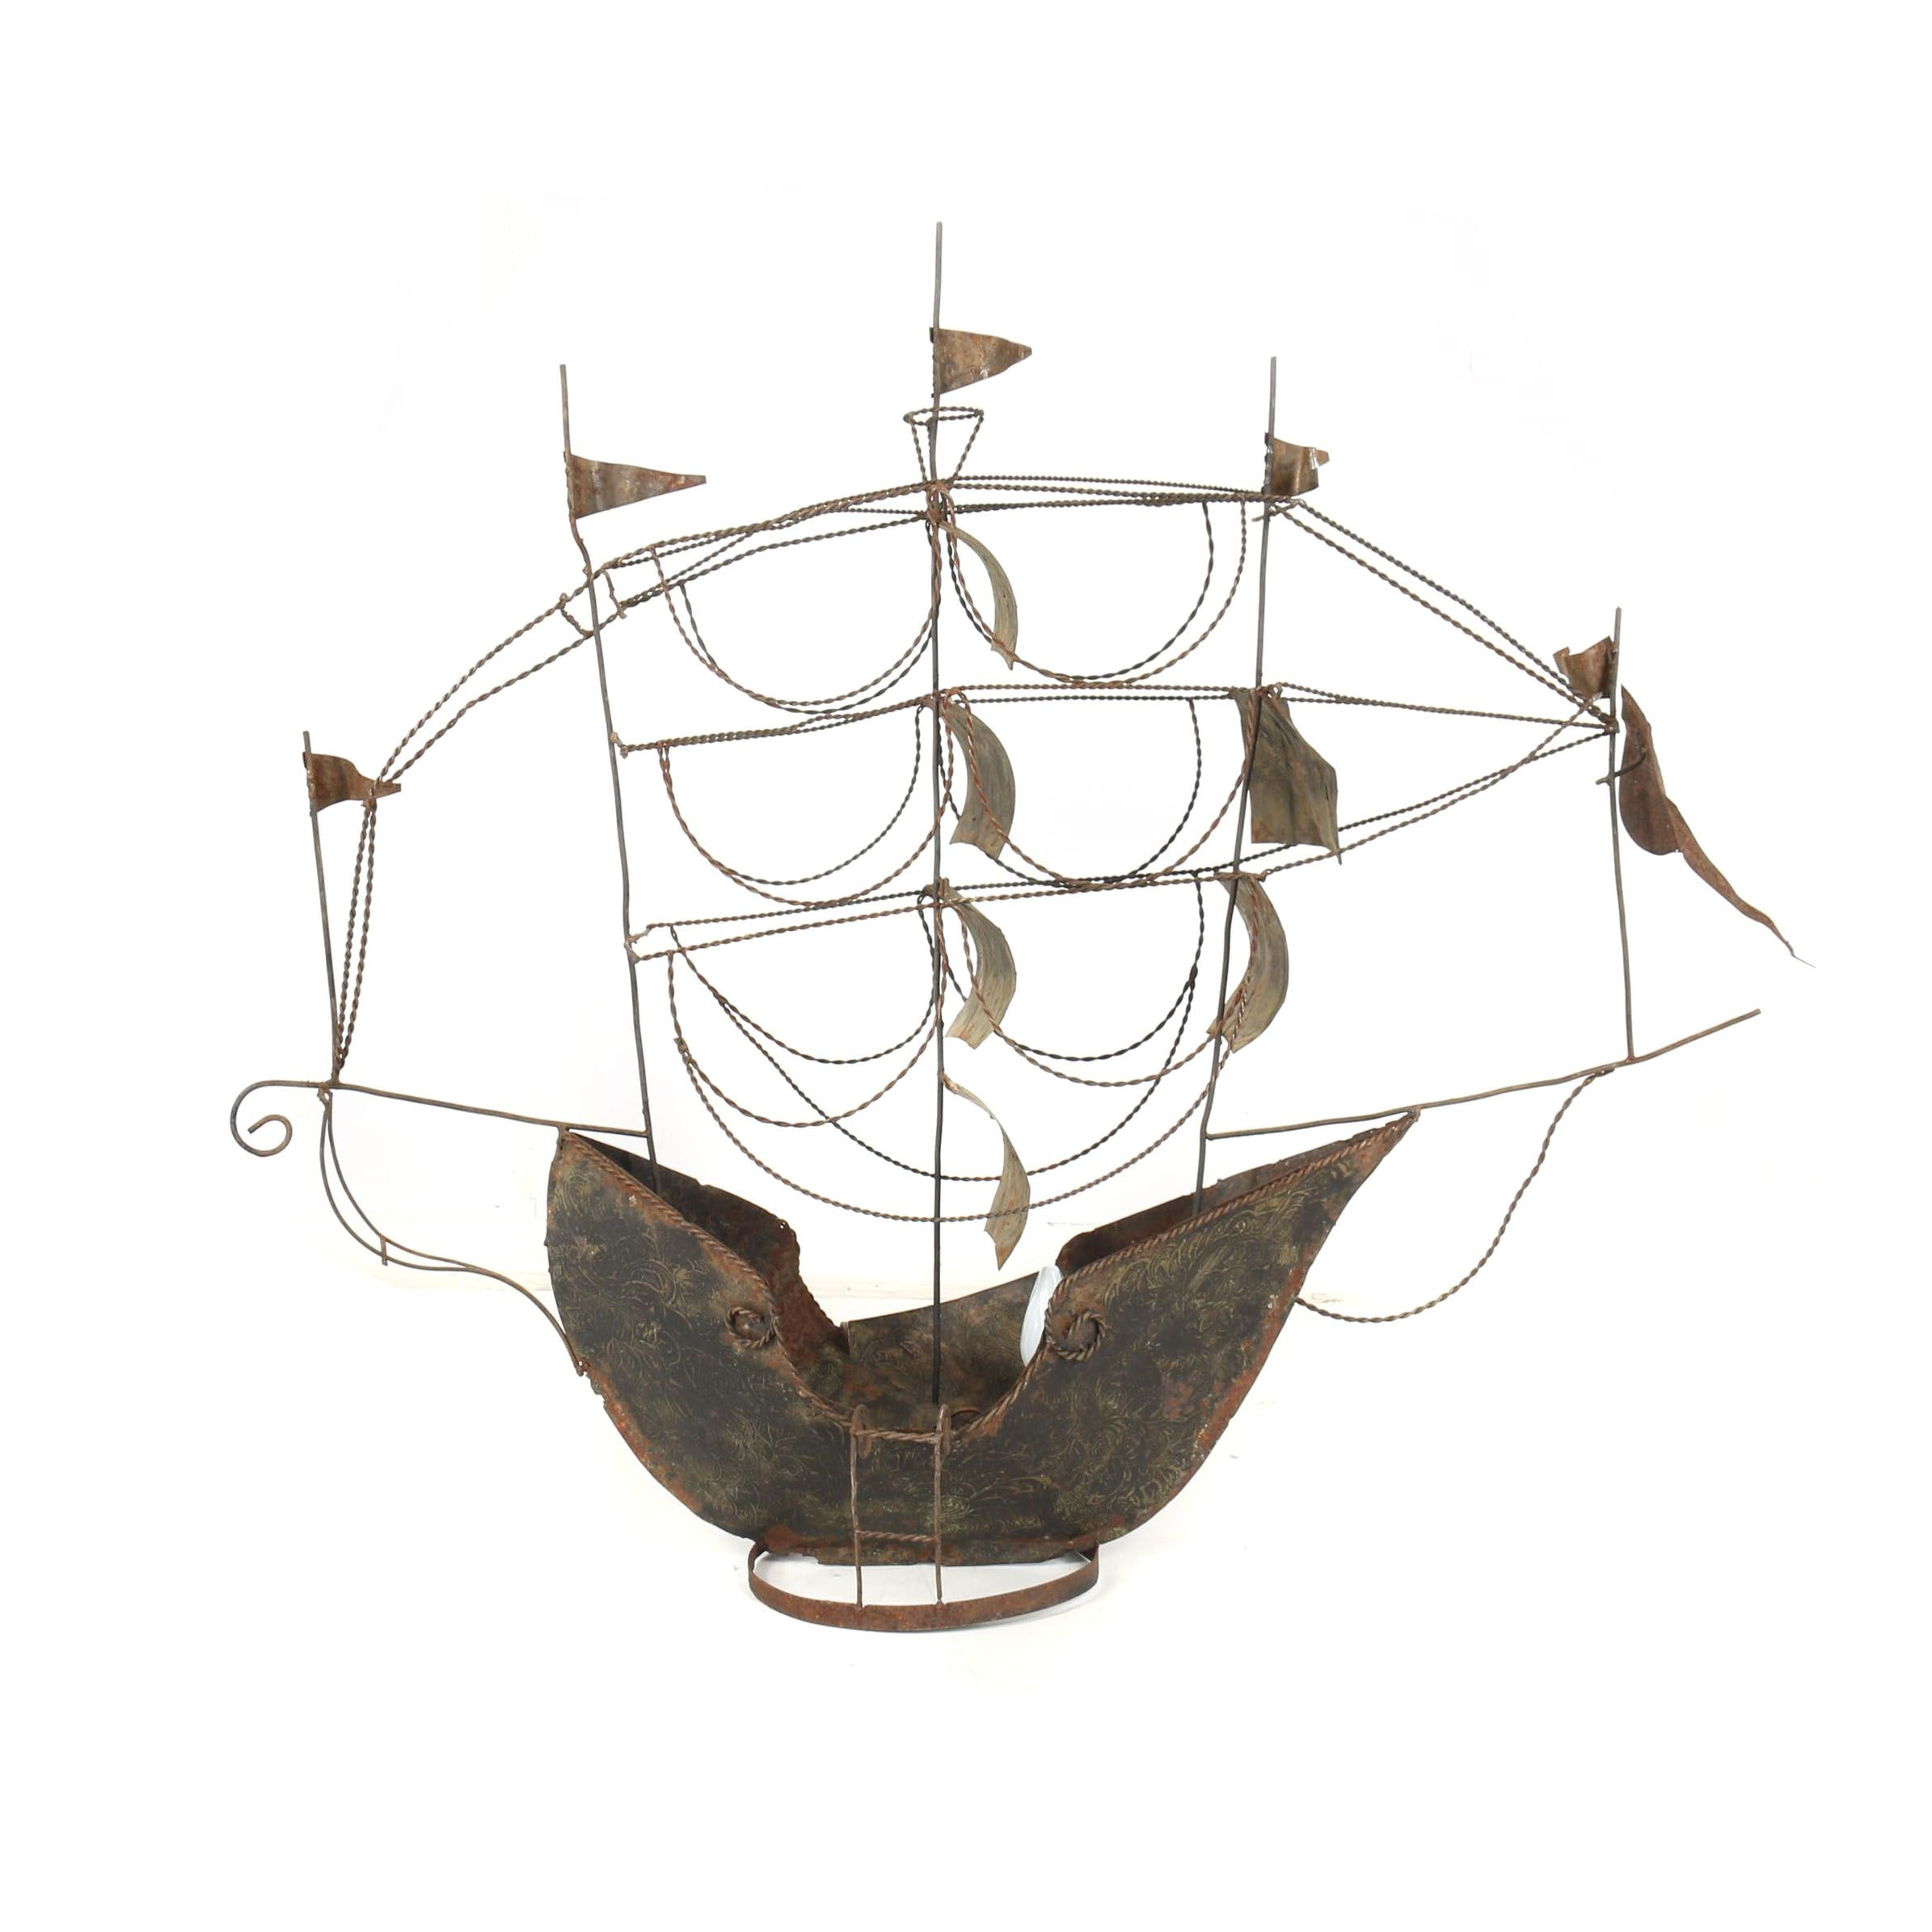 Handcrafted Found Metal Object Sailing Ship Lamp, Mid-Century